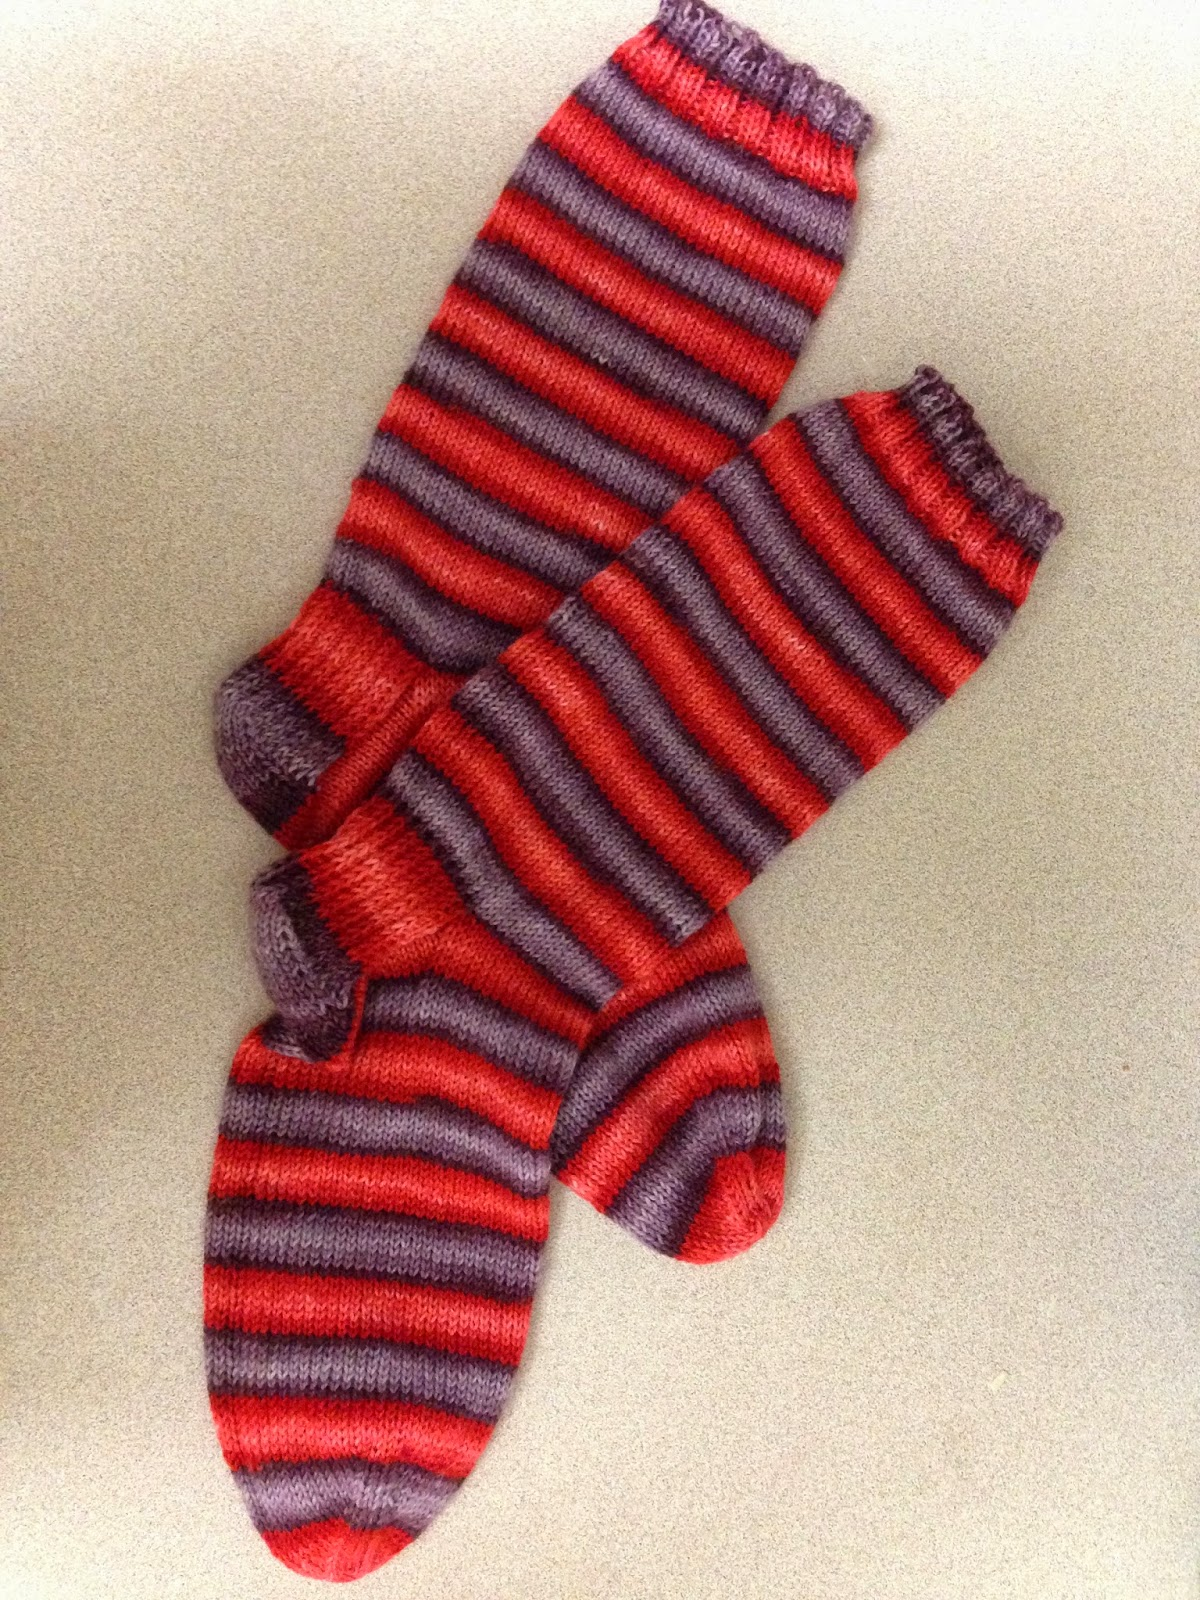 Basic Sock Knitting Pattern : The Various Areas of My Expertise: Greek Life Fraternity Socks (Dyeing instru...